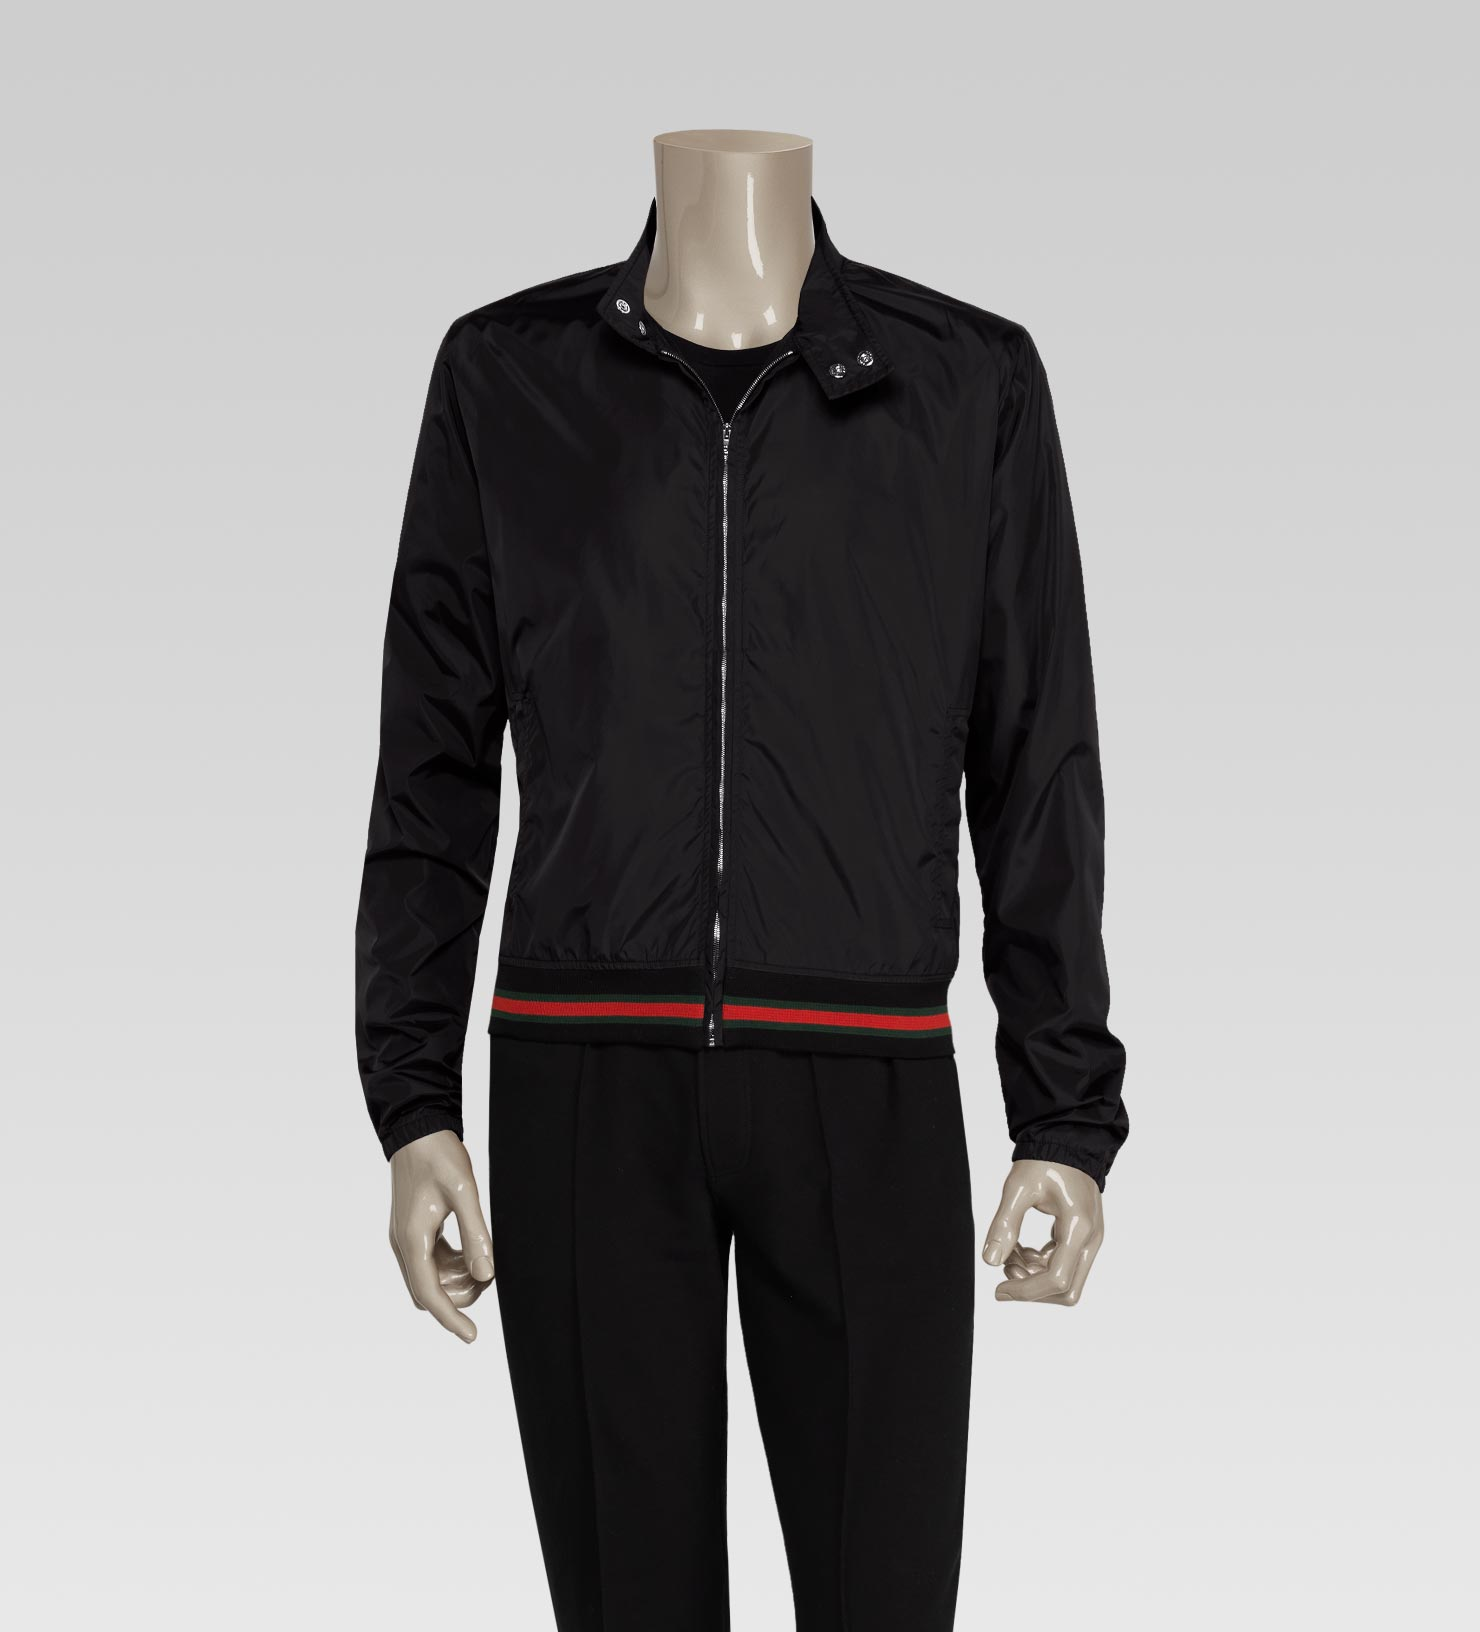 Gucci Mens Bomber Jacket With 500 By Gucci Script Print In